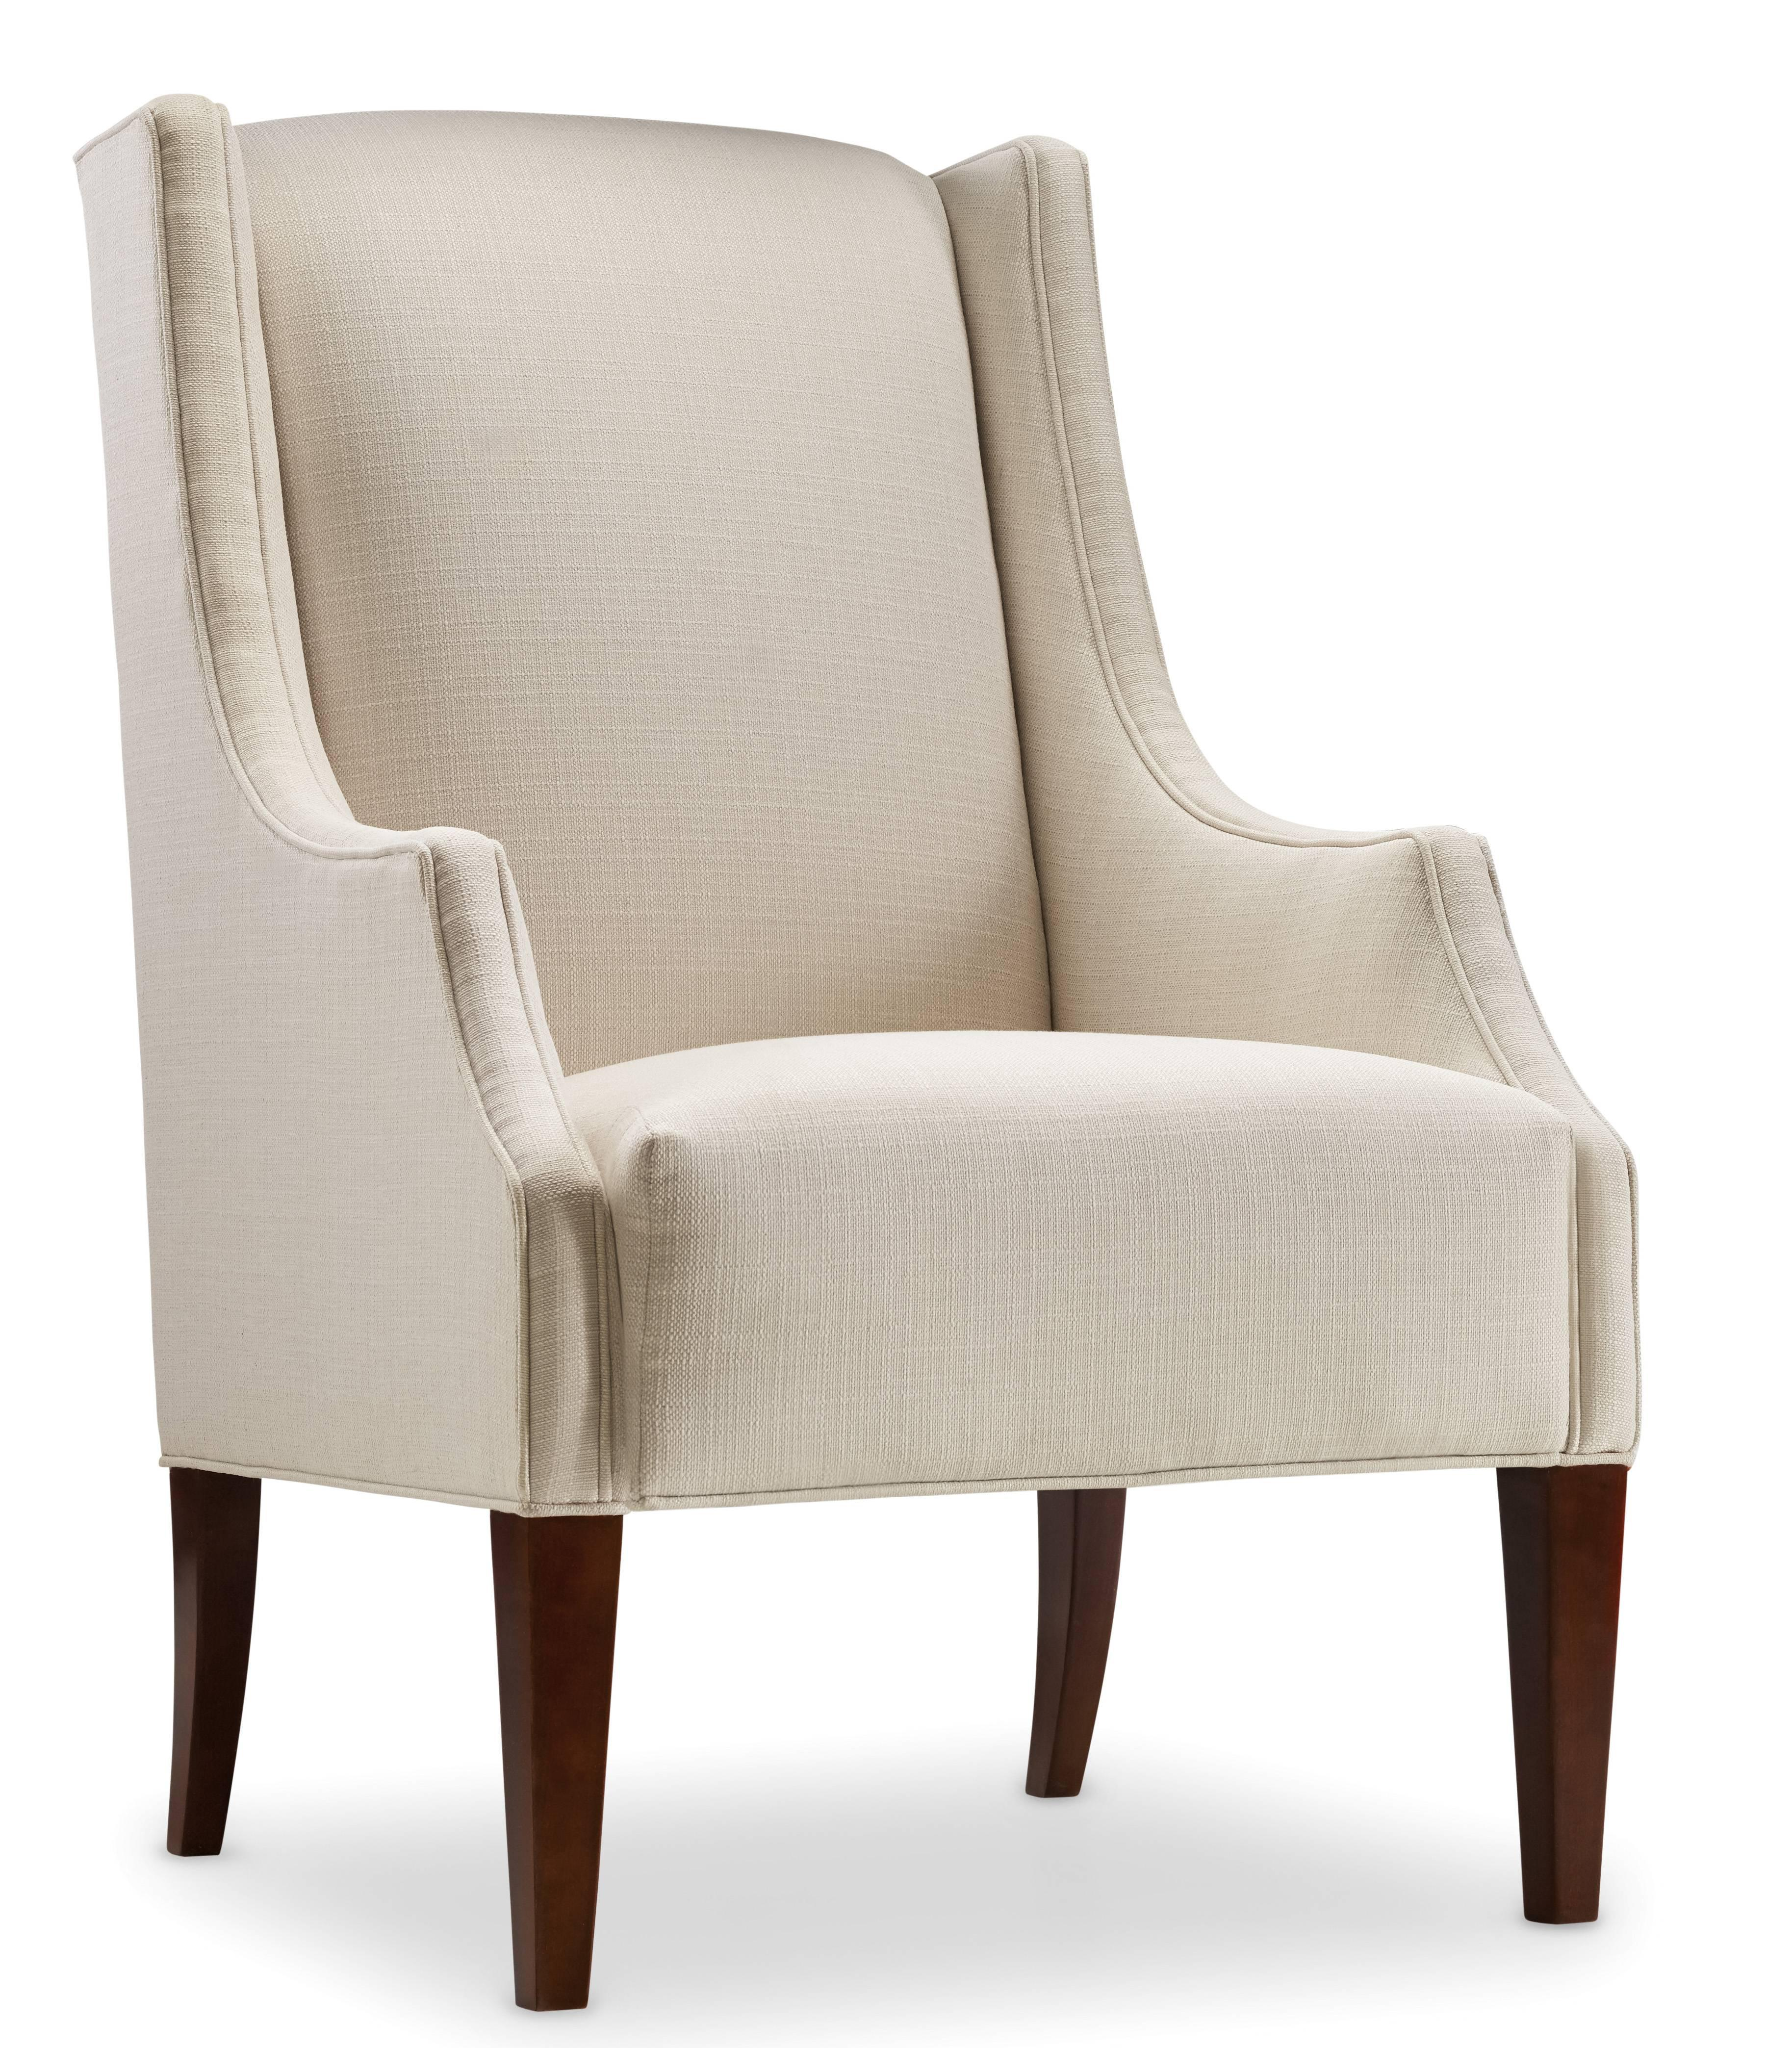 Remarkable Zoe Chair H Contract Furniture Dailytribune Chair Design For Home Dailytribuneorg